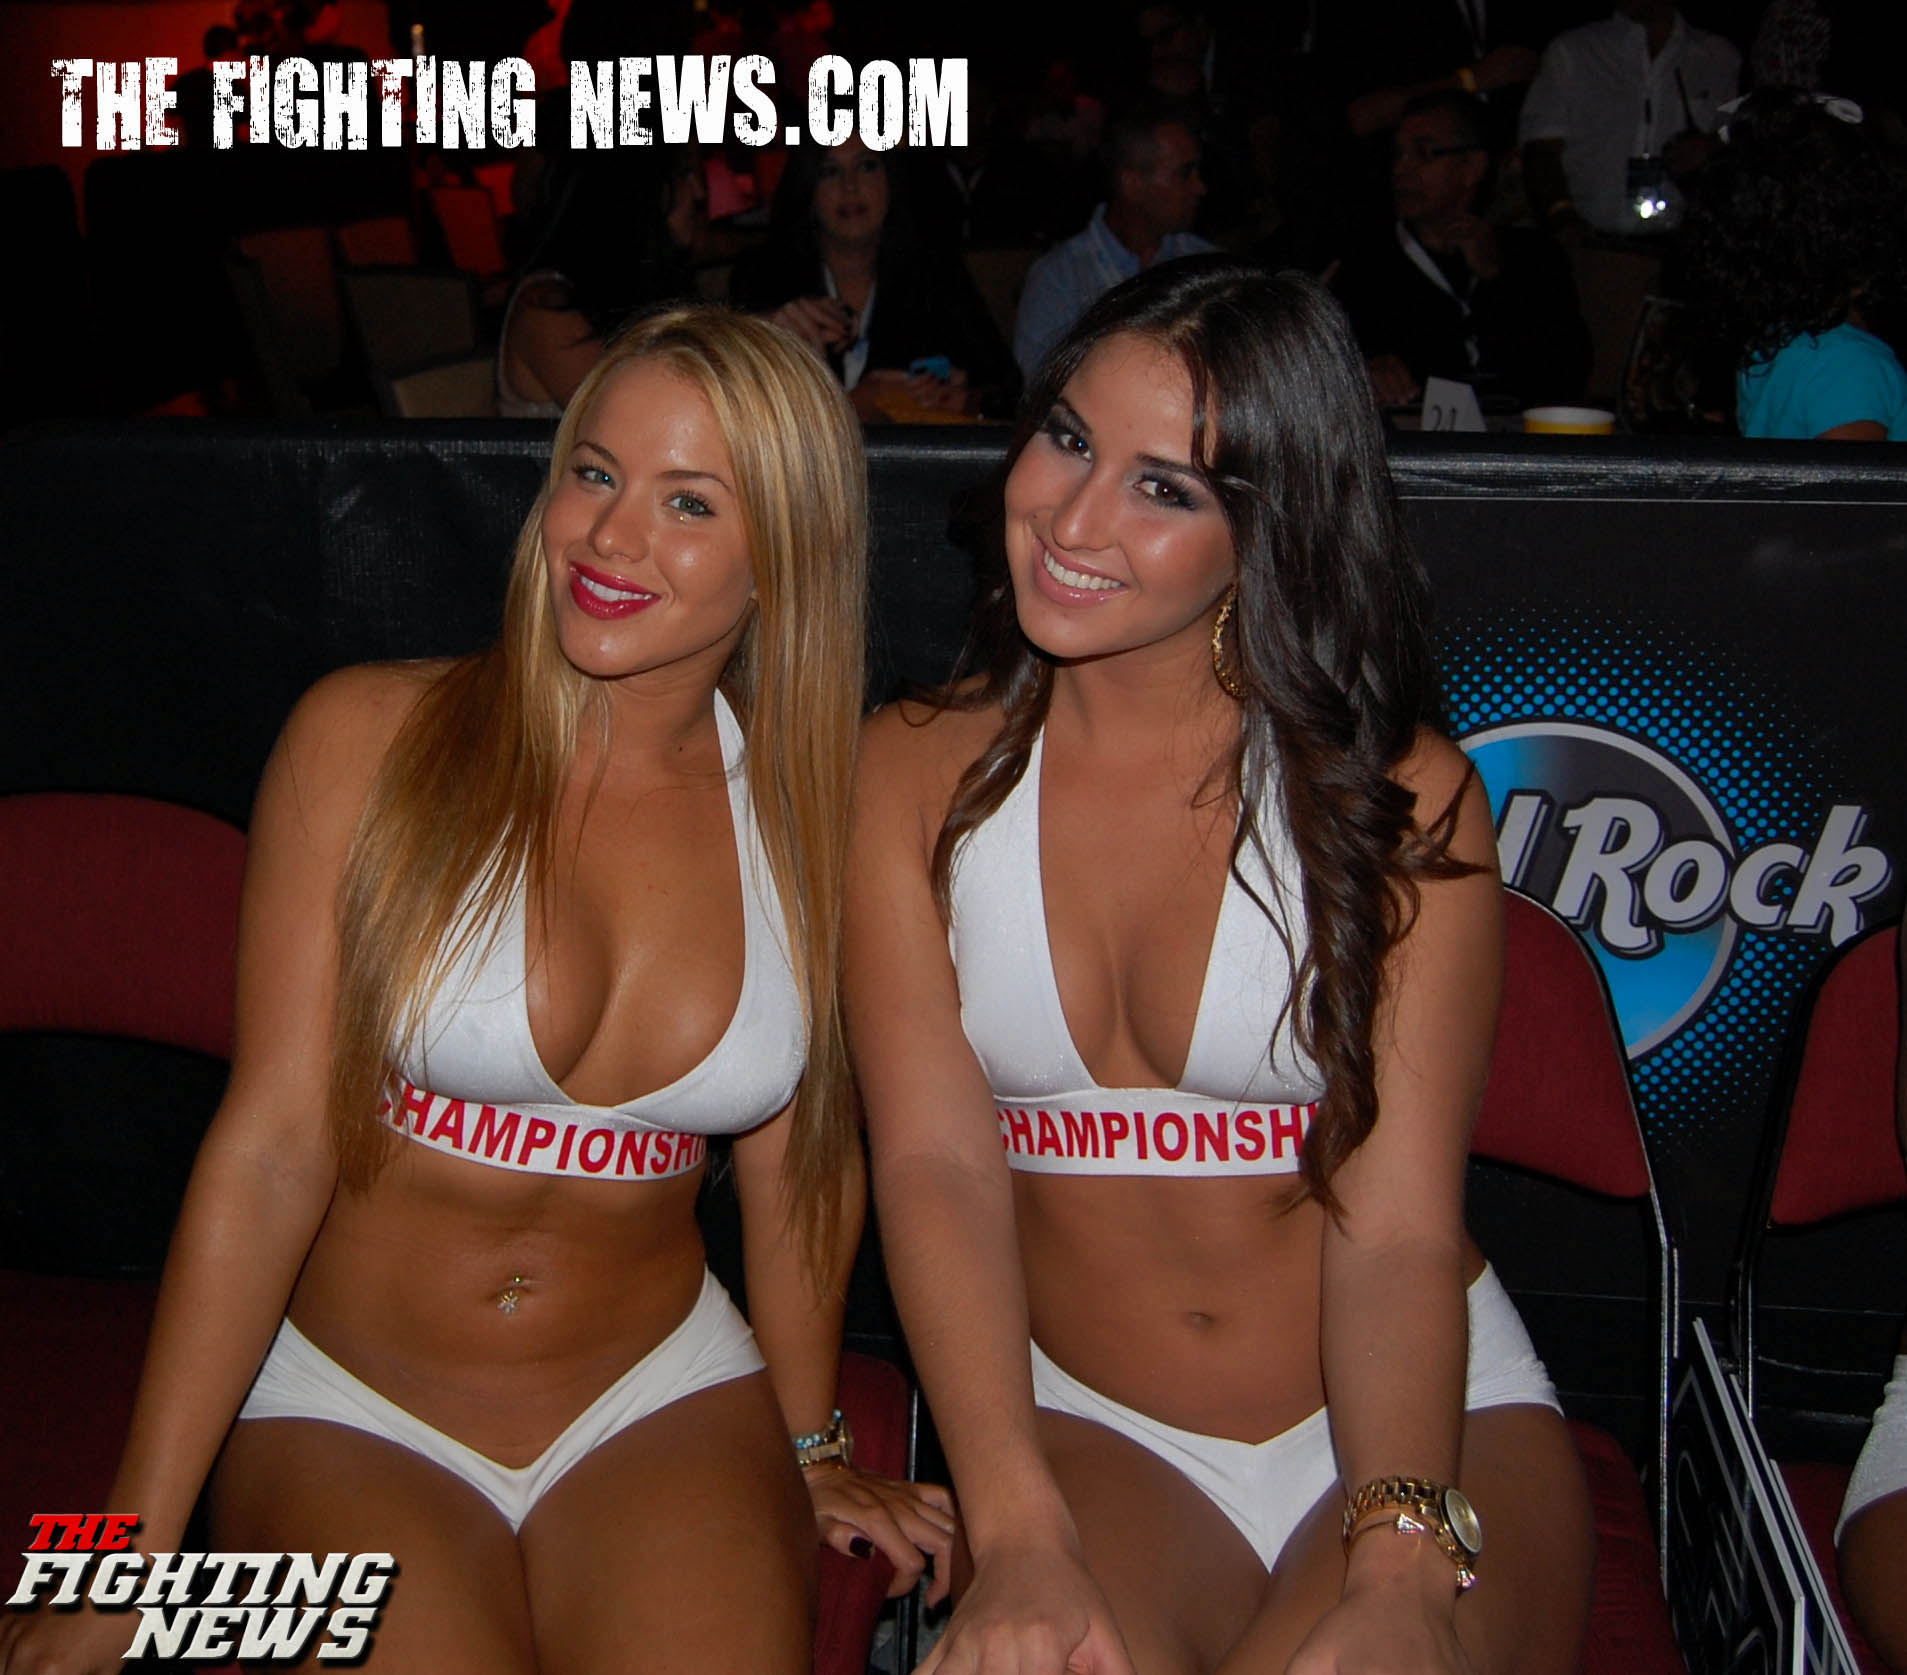 All FIGHT NEWS: BOXING, MMA & UFC